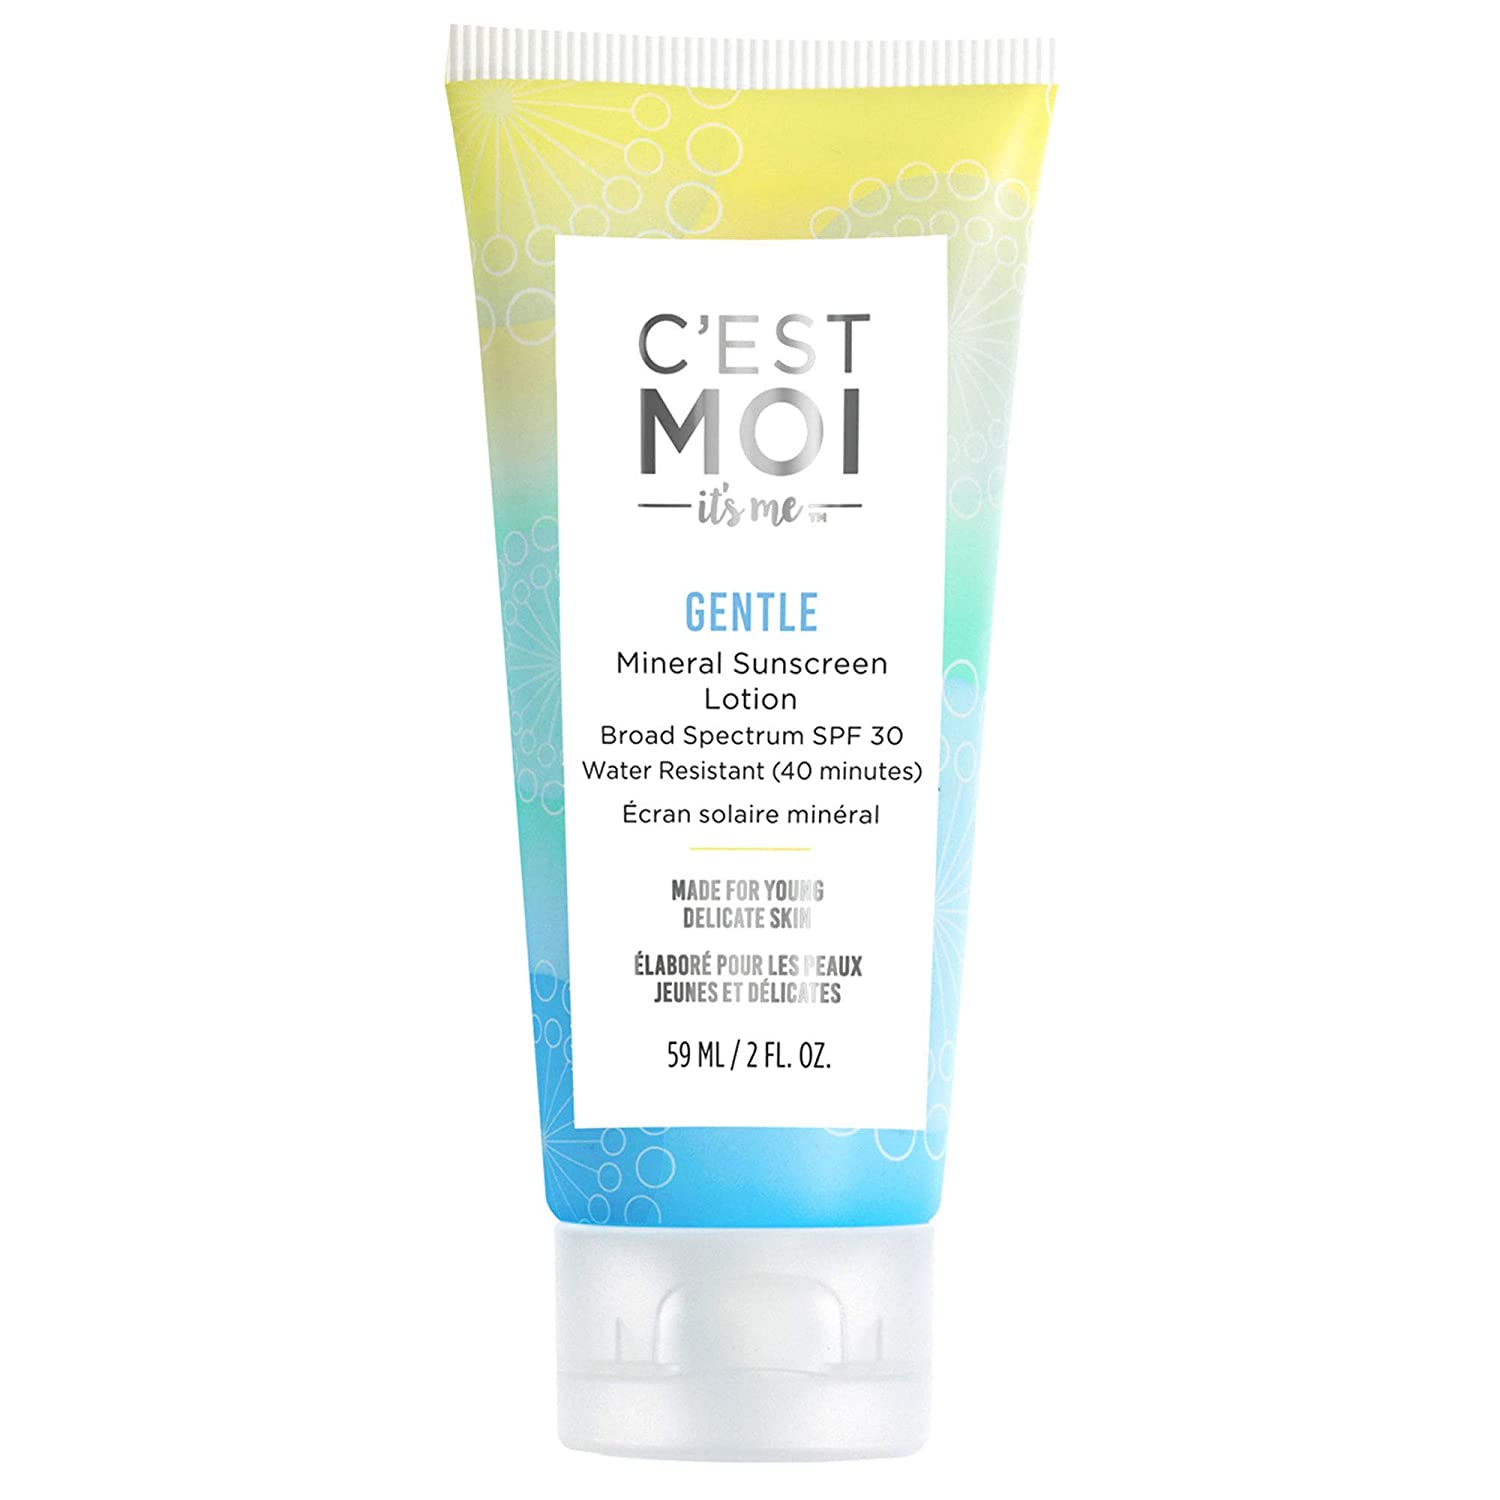 The C'est Moi Gentle Mineral Sunscreen Lotion Broad Spectrum SPF 30 travel product recommended by Deborah Kerner on Pretty Progressive.